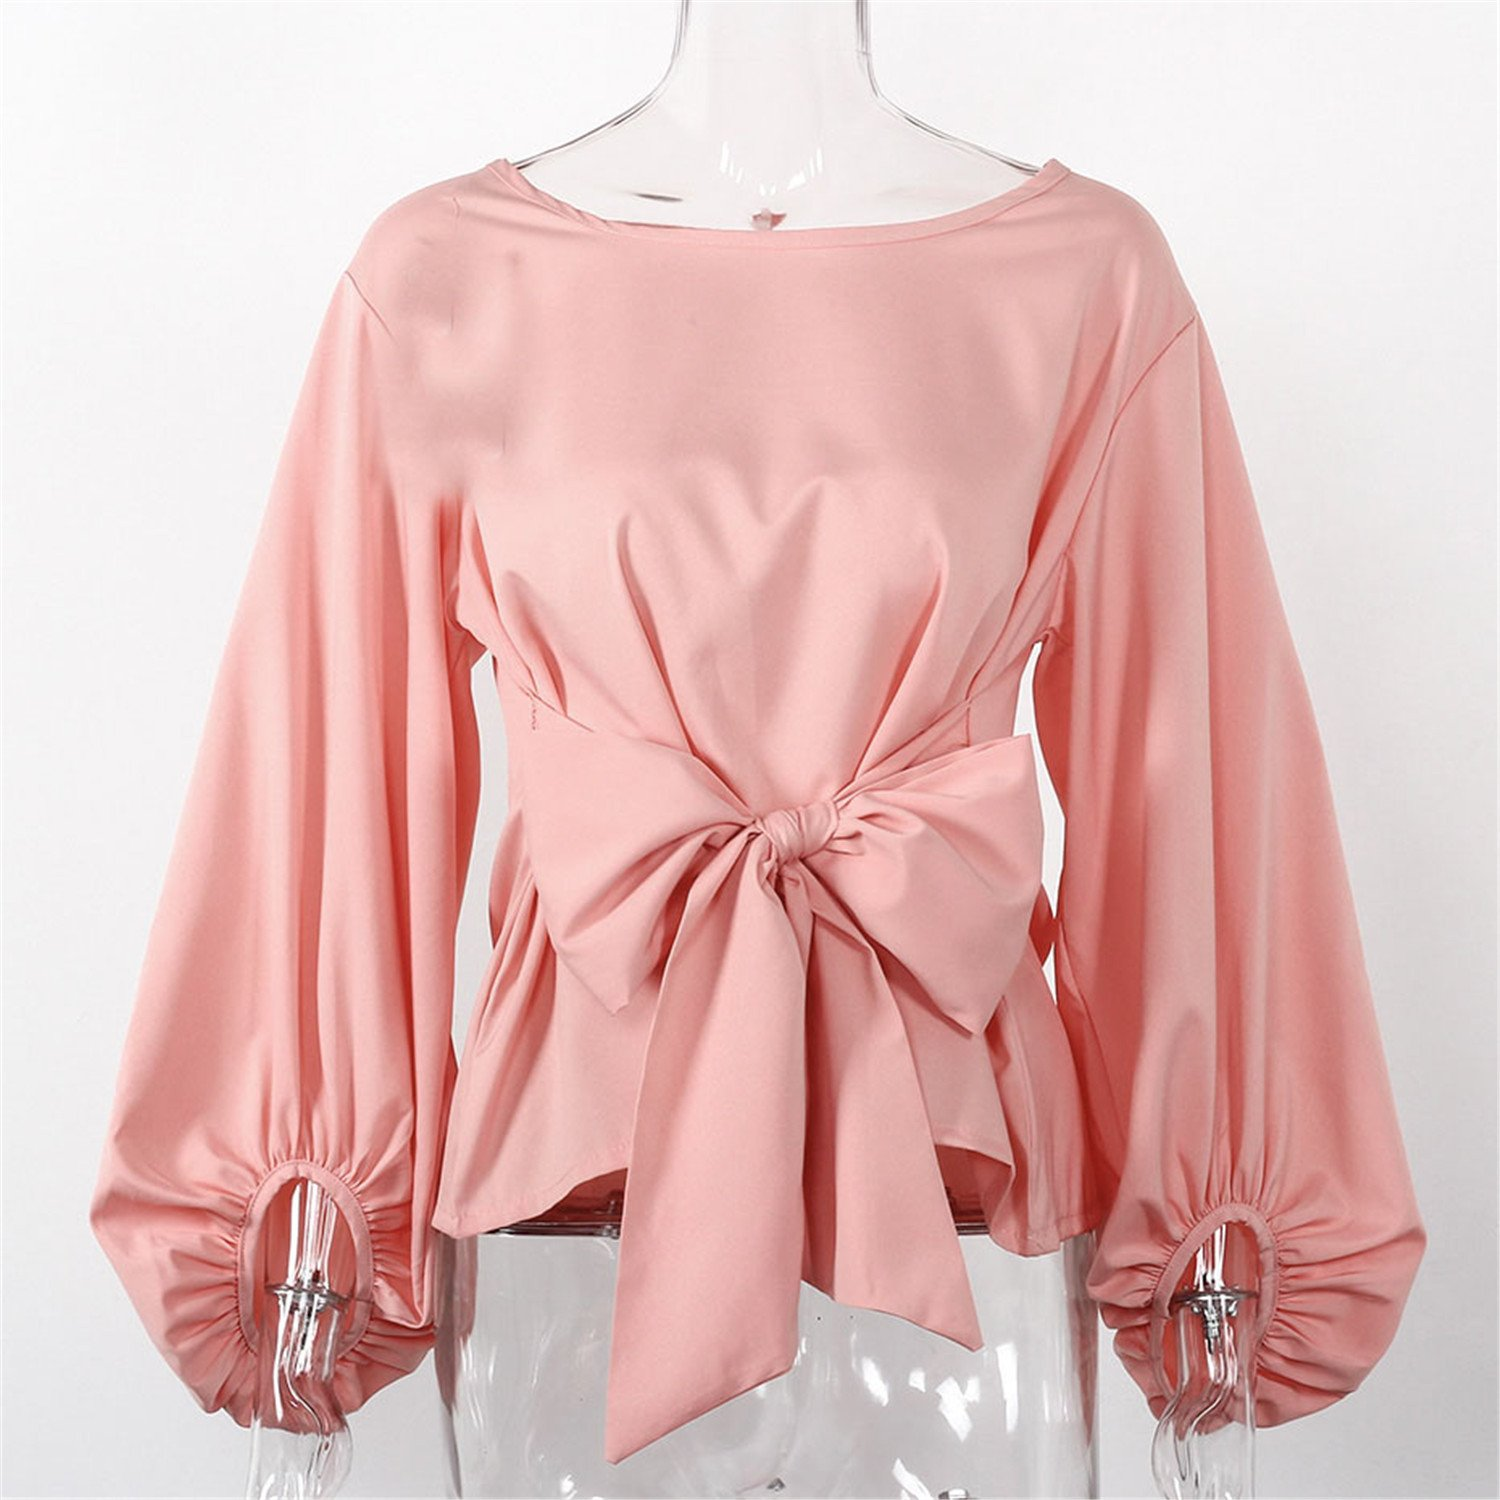 Amazon.com: Guy-Hats Chiffon Wrap Blouse Long Sleeve Blouses with Bow Belt Loose Casual Tops Womens Clothing: Clothing